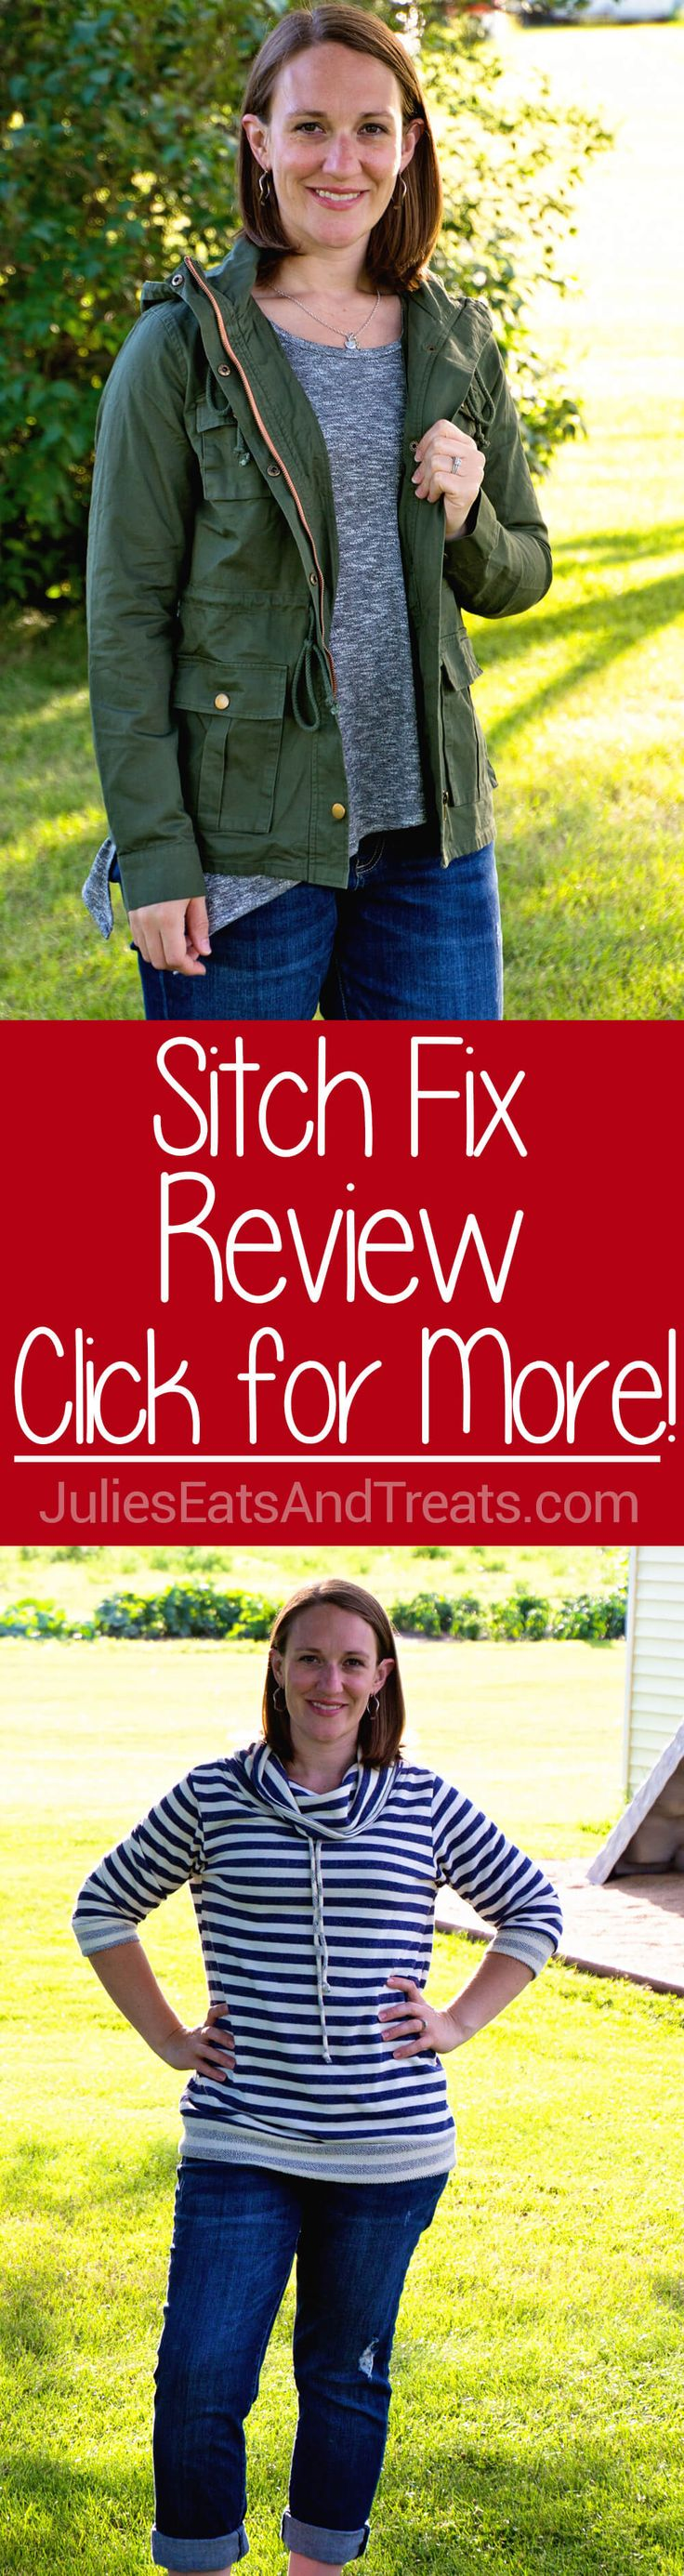 Stitch Fix Review August 2016 ~ Personalized Stylists Pick Out a Selection of Five Clothing Items or Accessories and Ship it to Your Doorstep!…